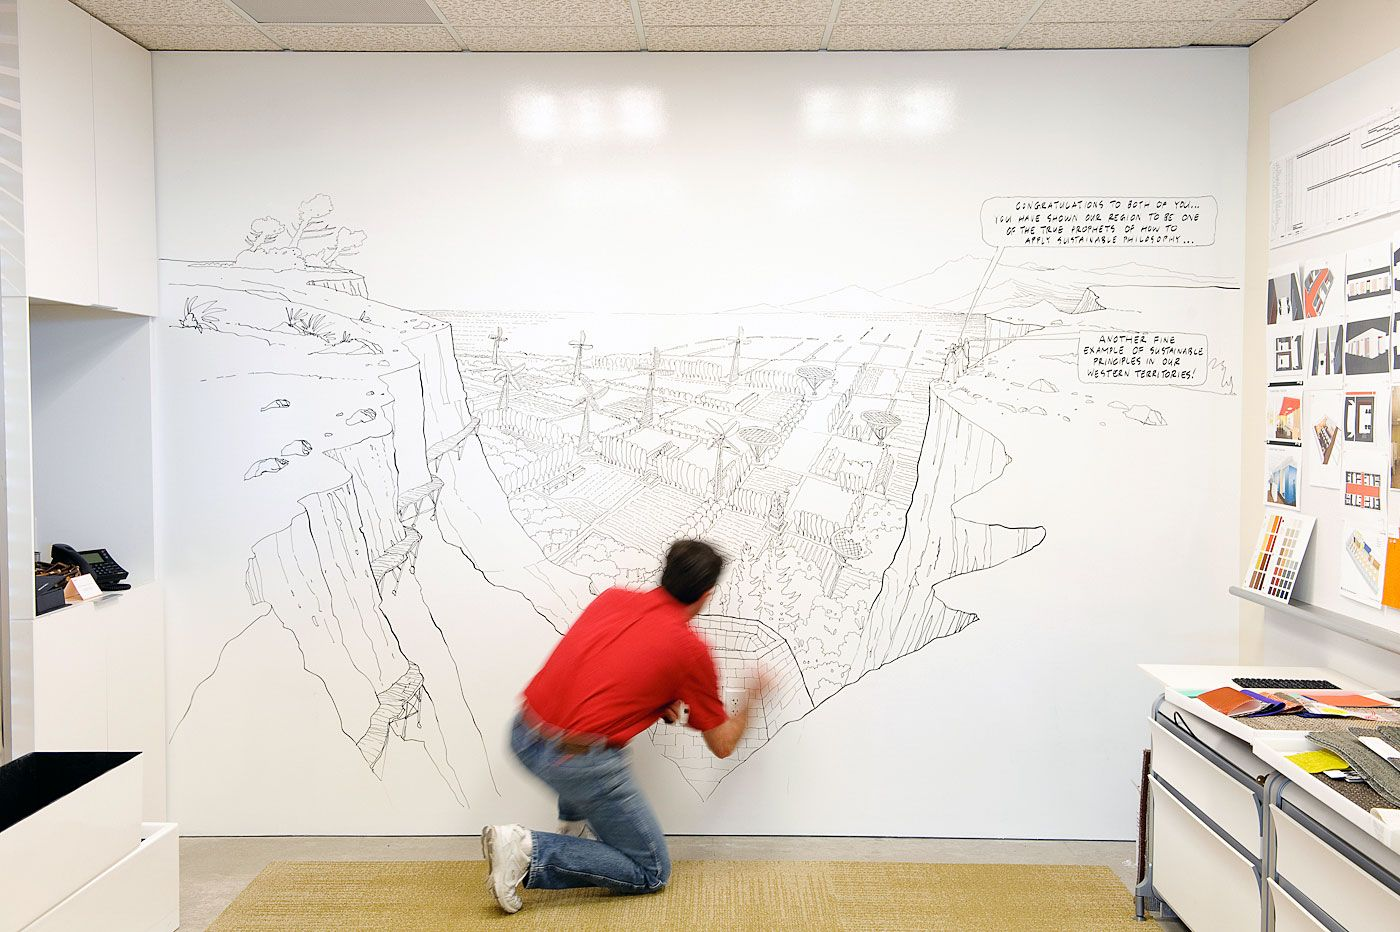 How To Turn A Wall Into A Whiteboard Ideapaint Whiteboard Paint Home Pinterest